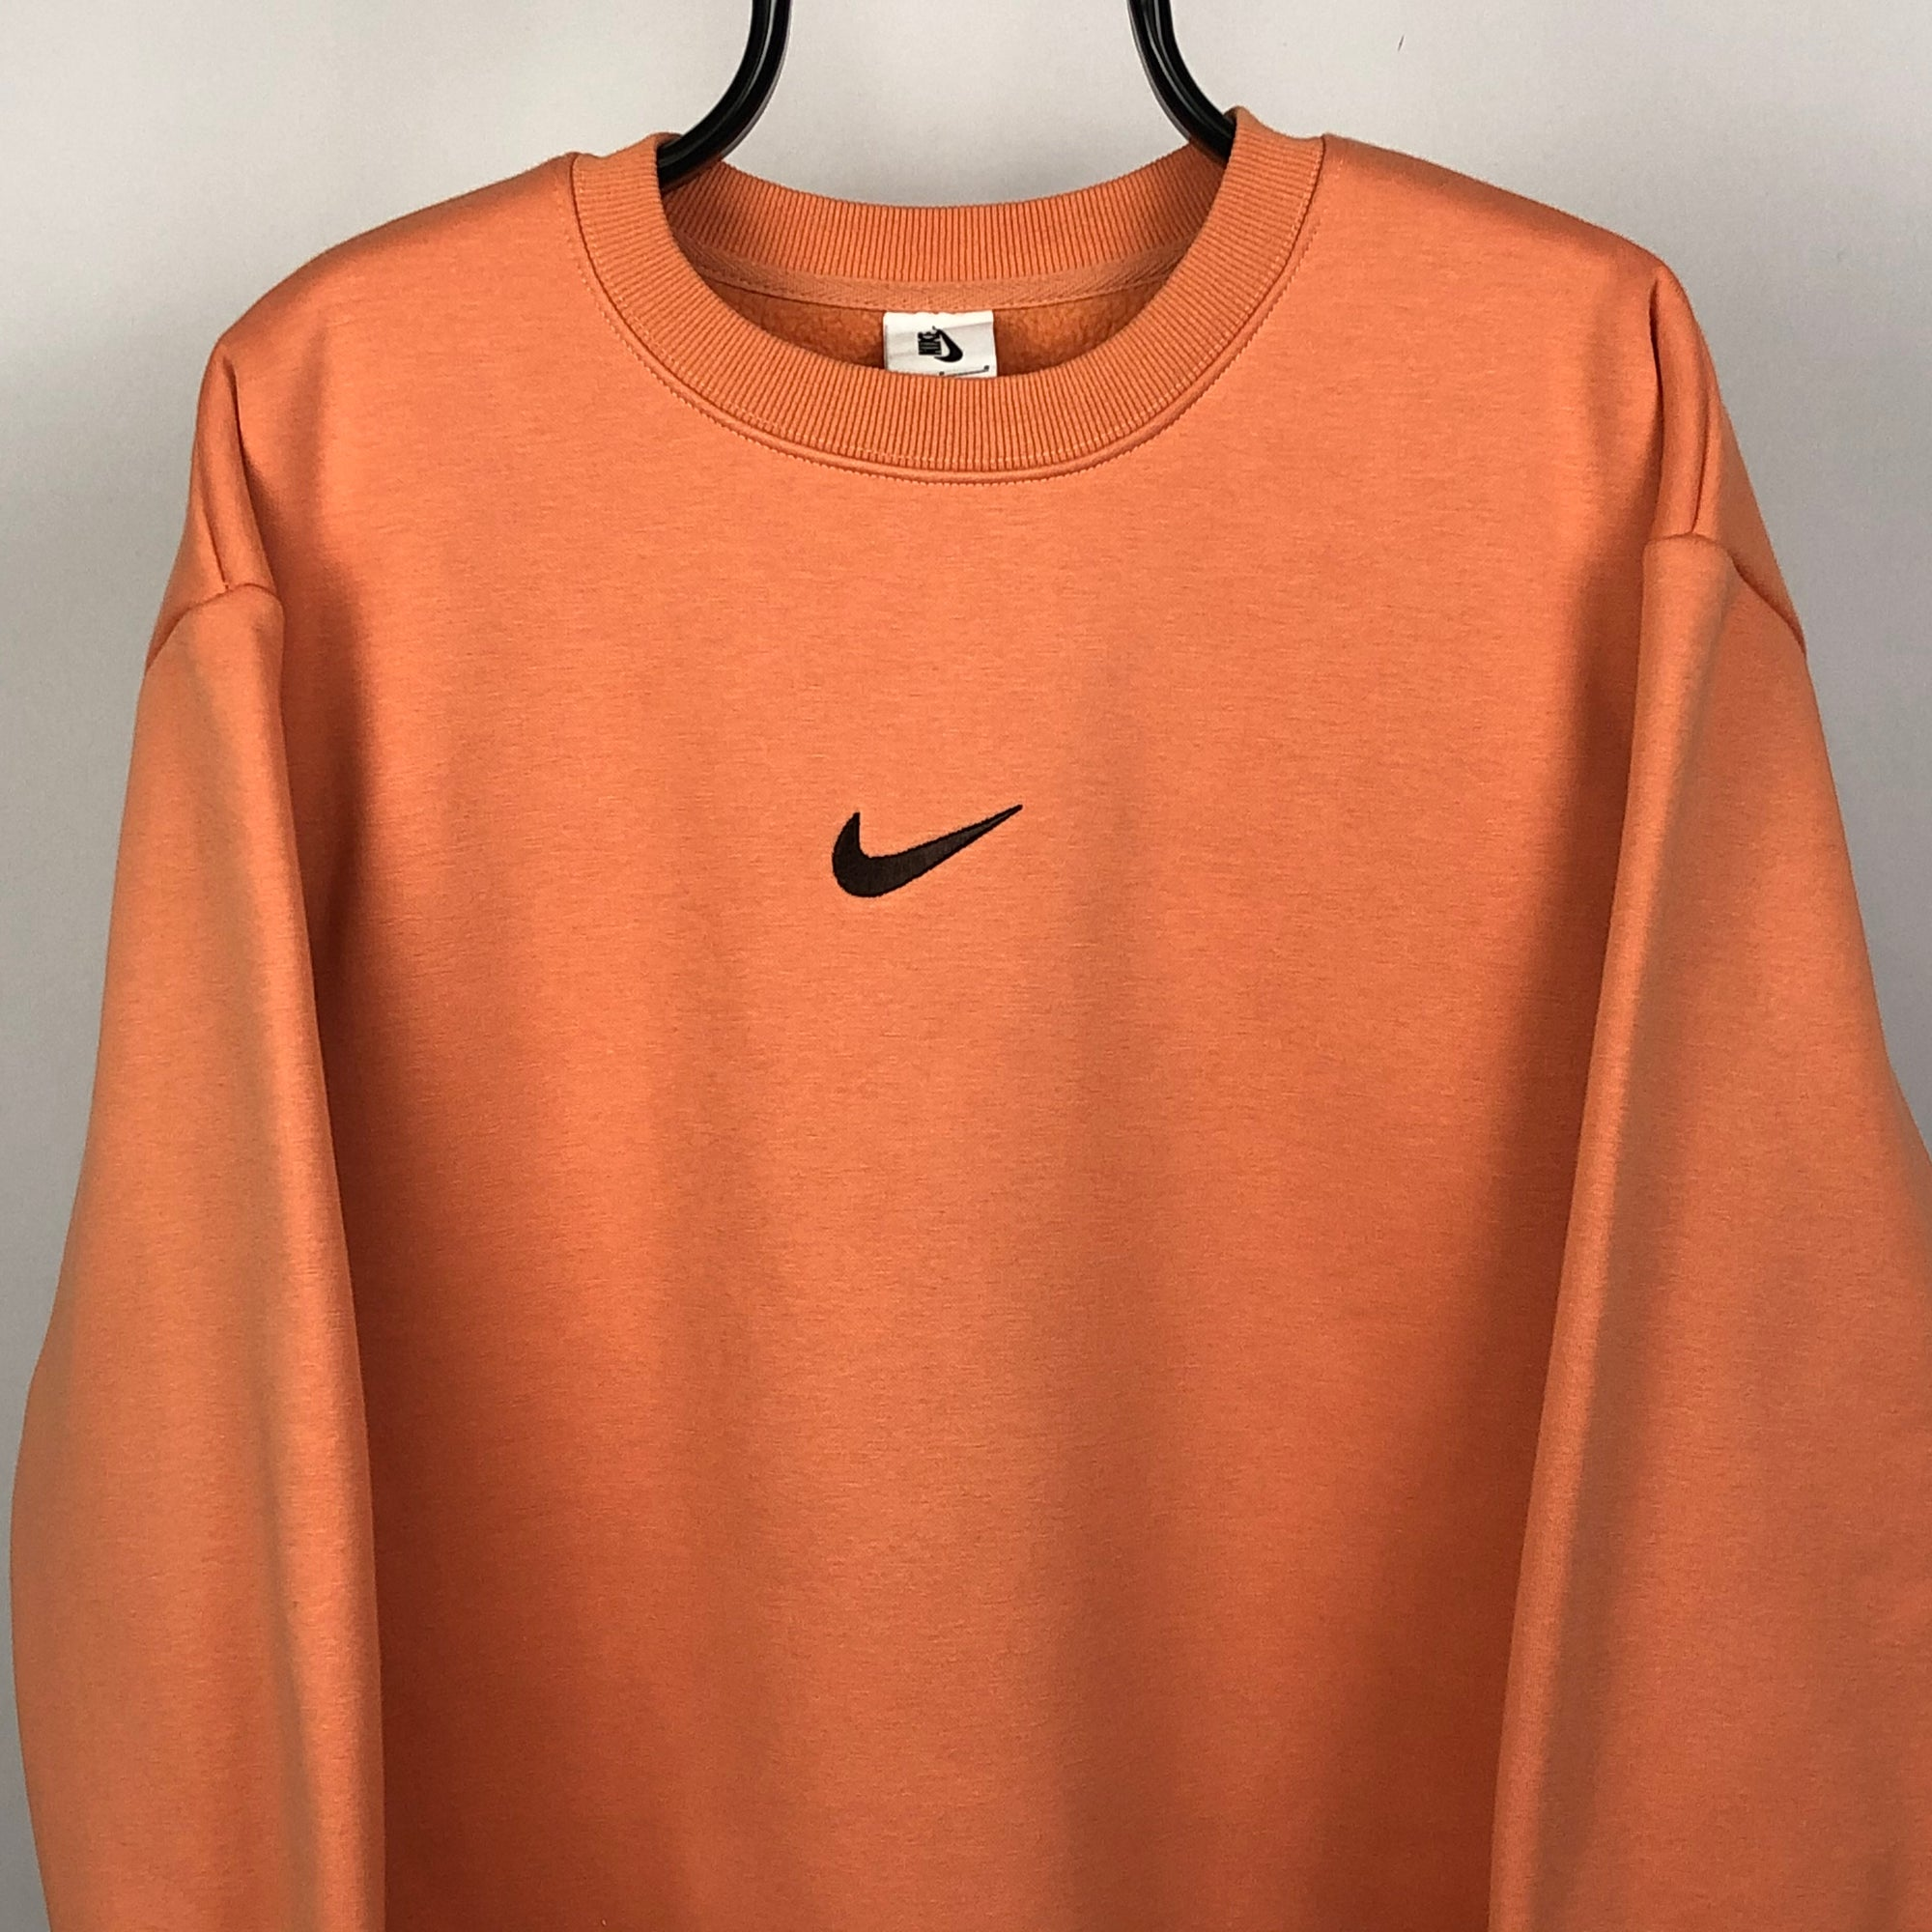 Nike Centre Embroidered Swoosh Sweatshirt in Orange - Men's Large/Women's XL